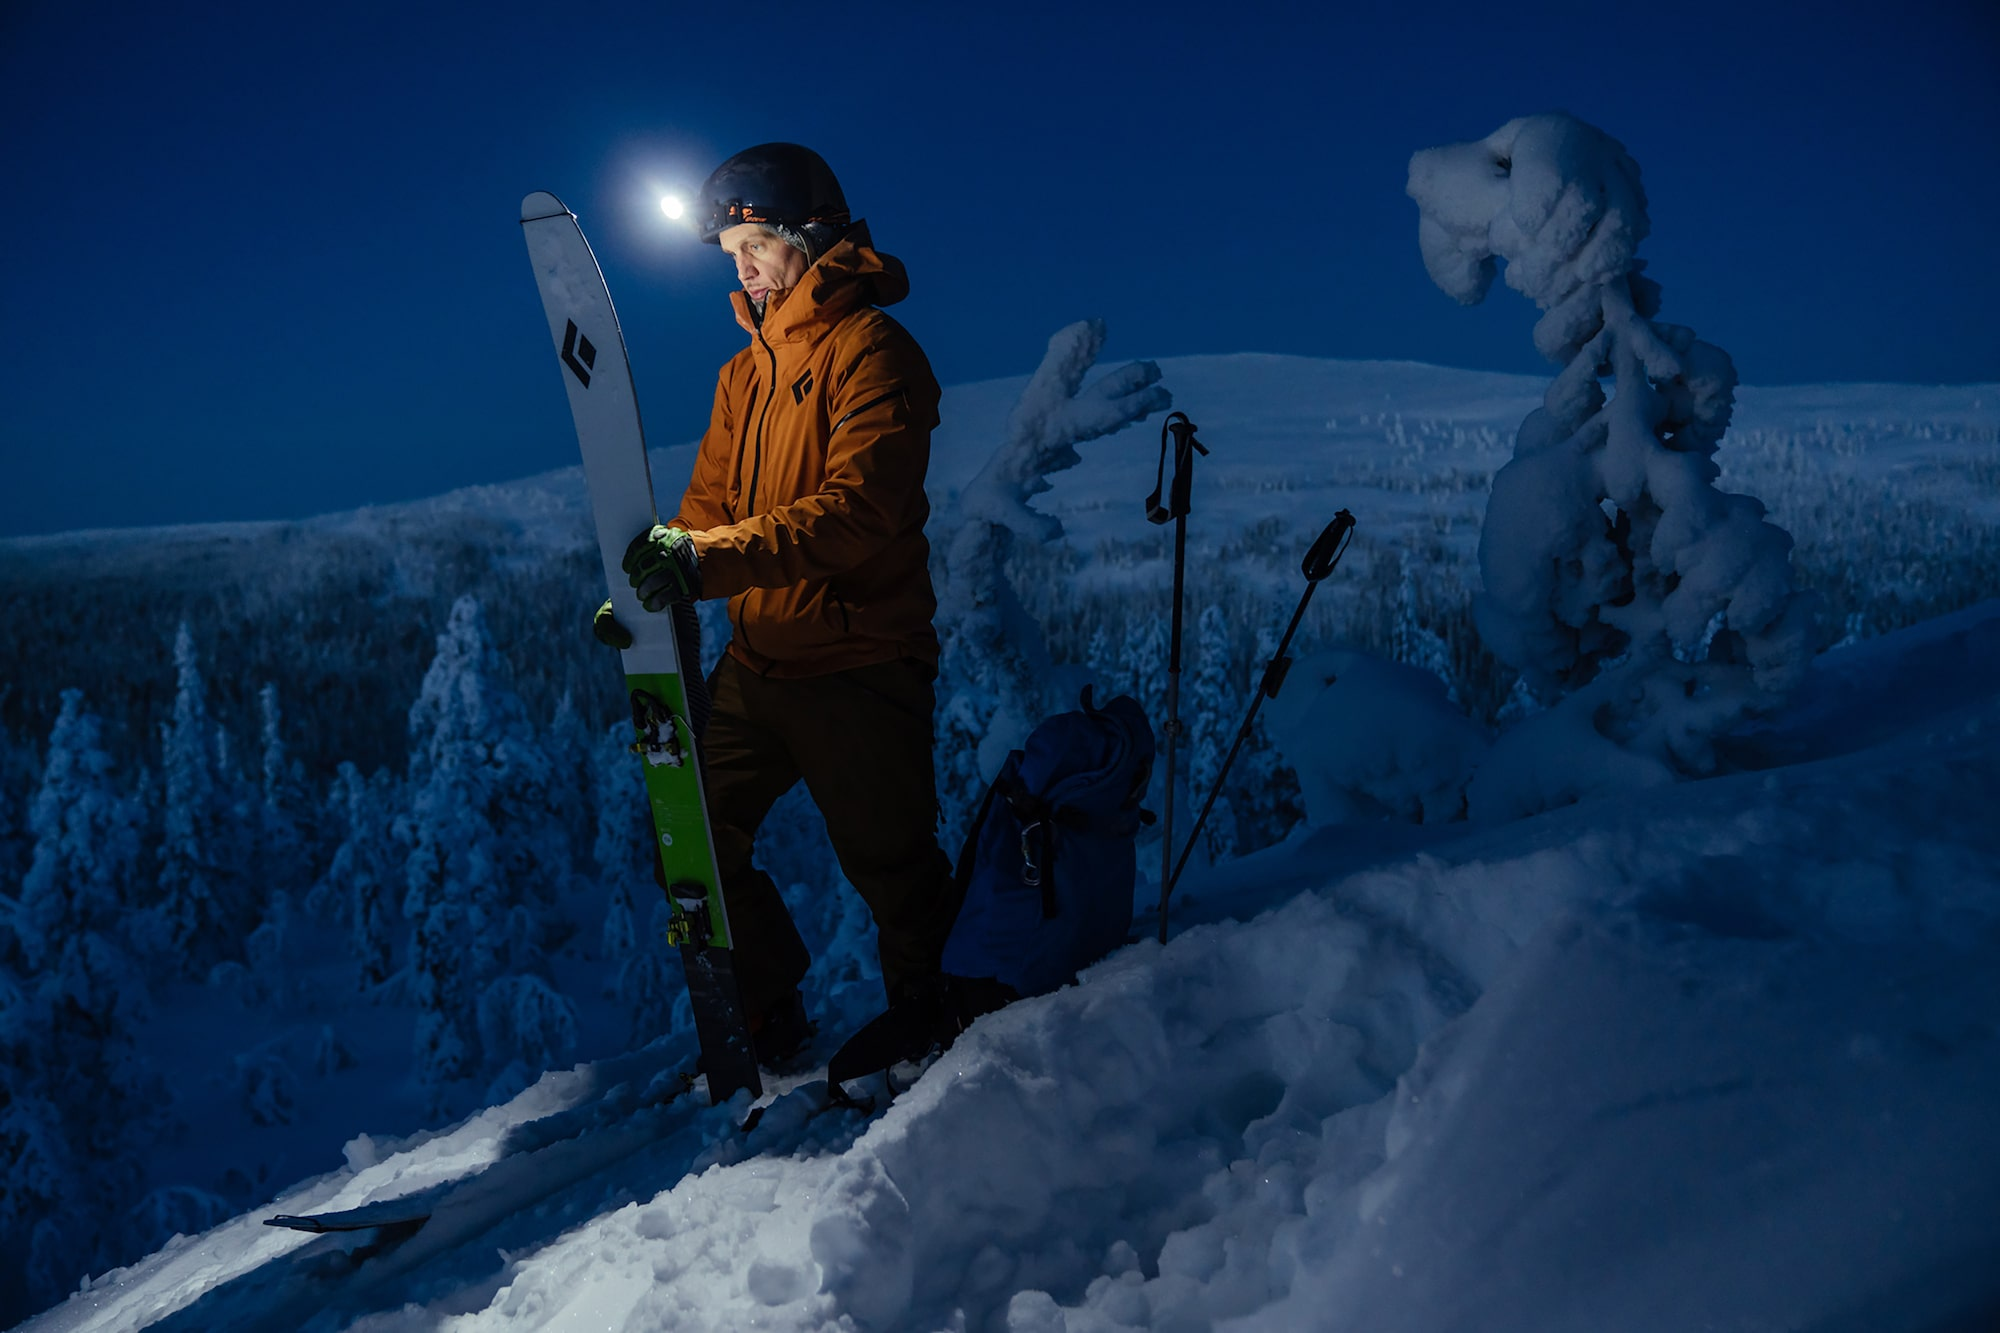 jaakko posti sony alpha 9 skier inspects his ski with the help of a head torch